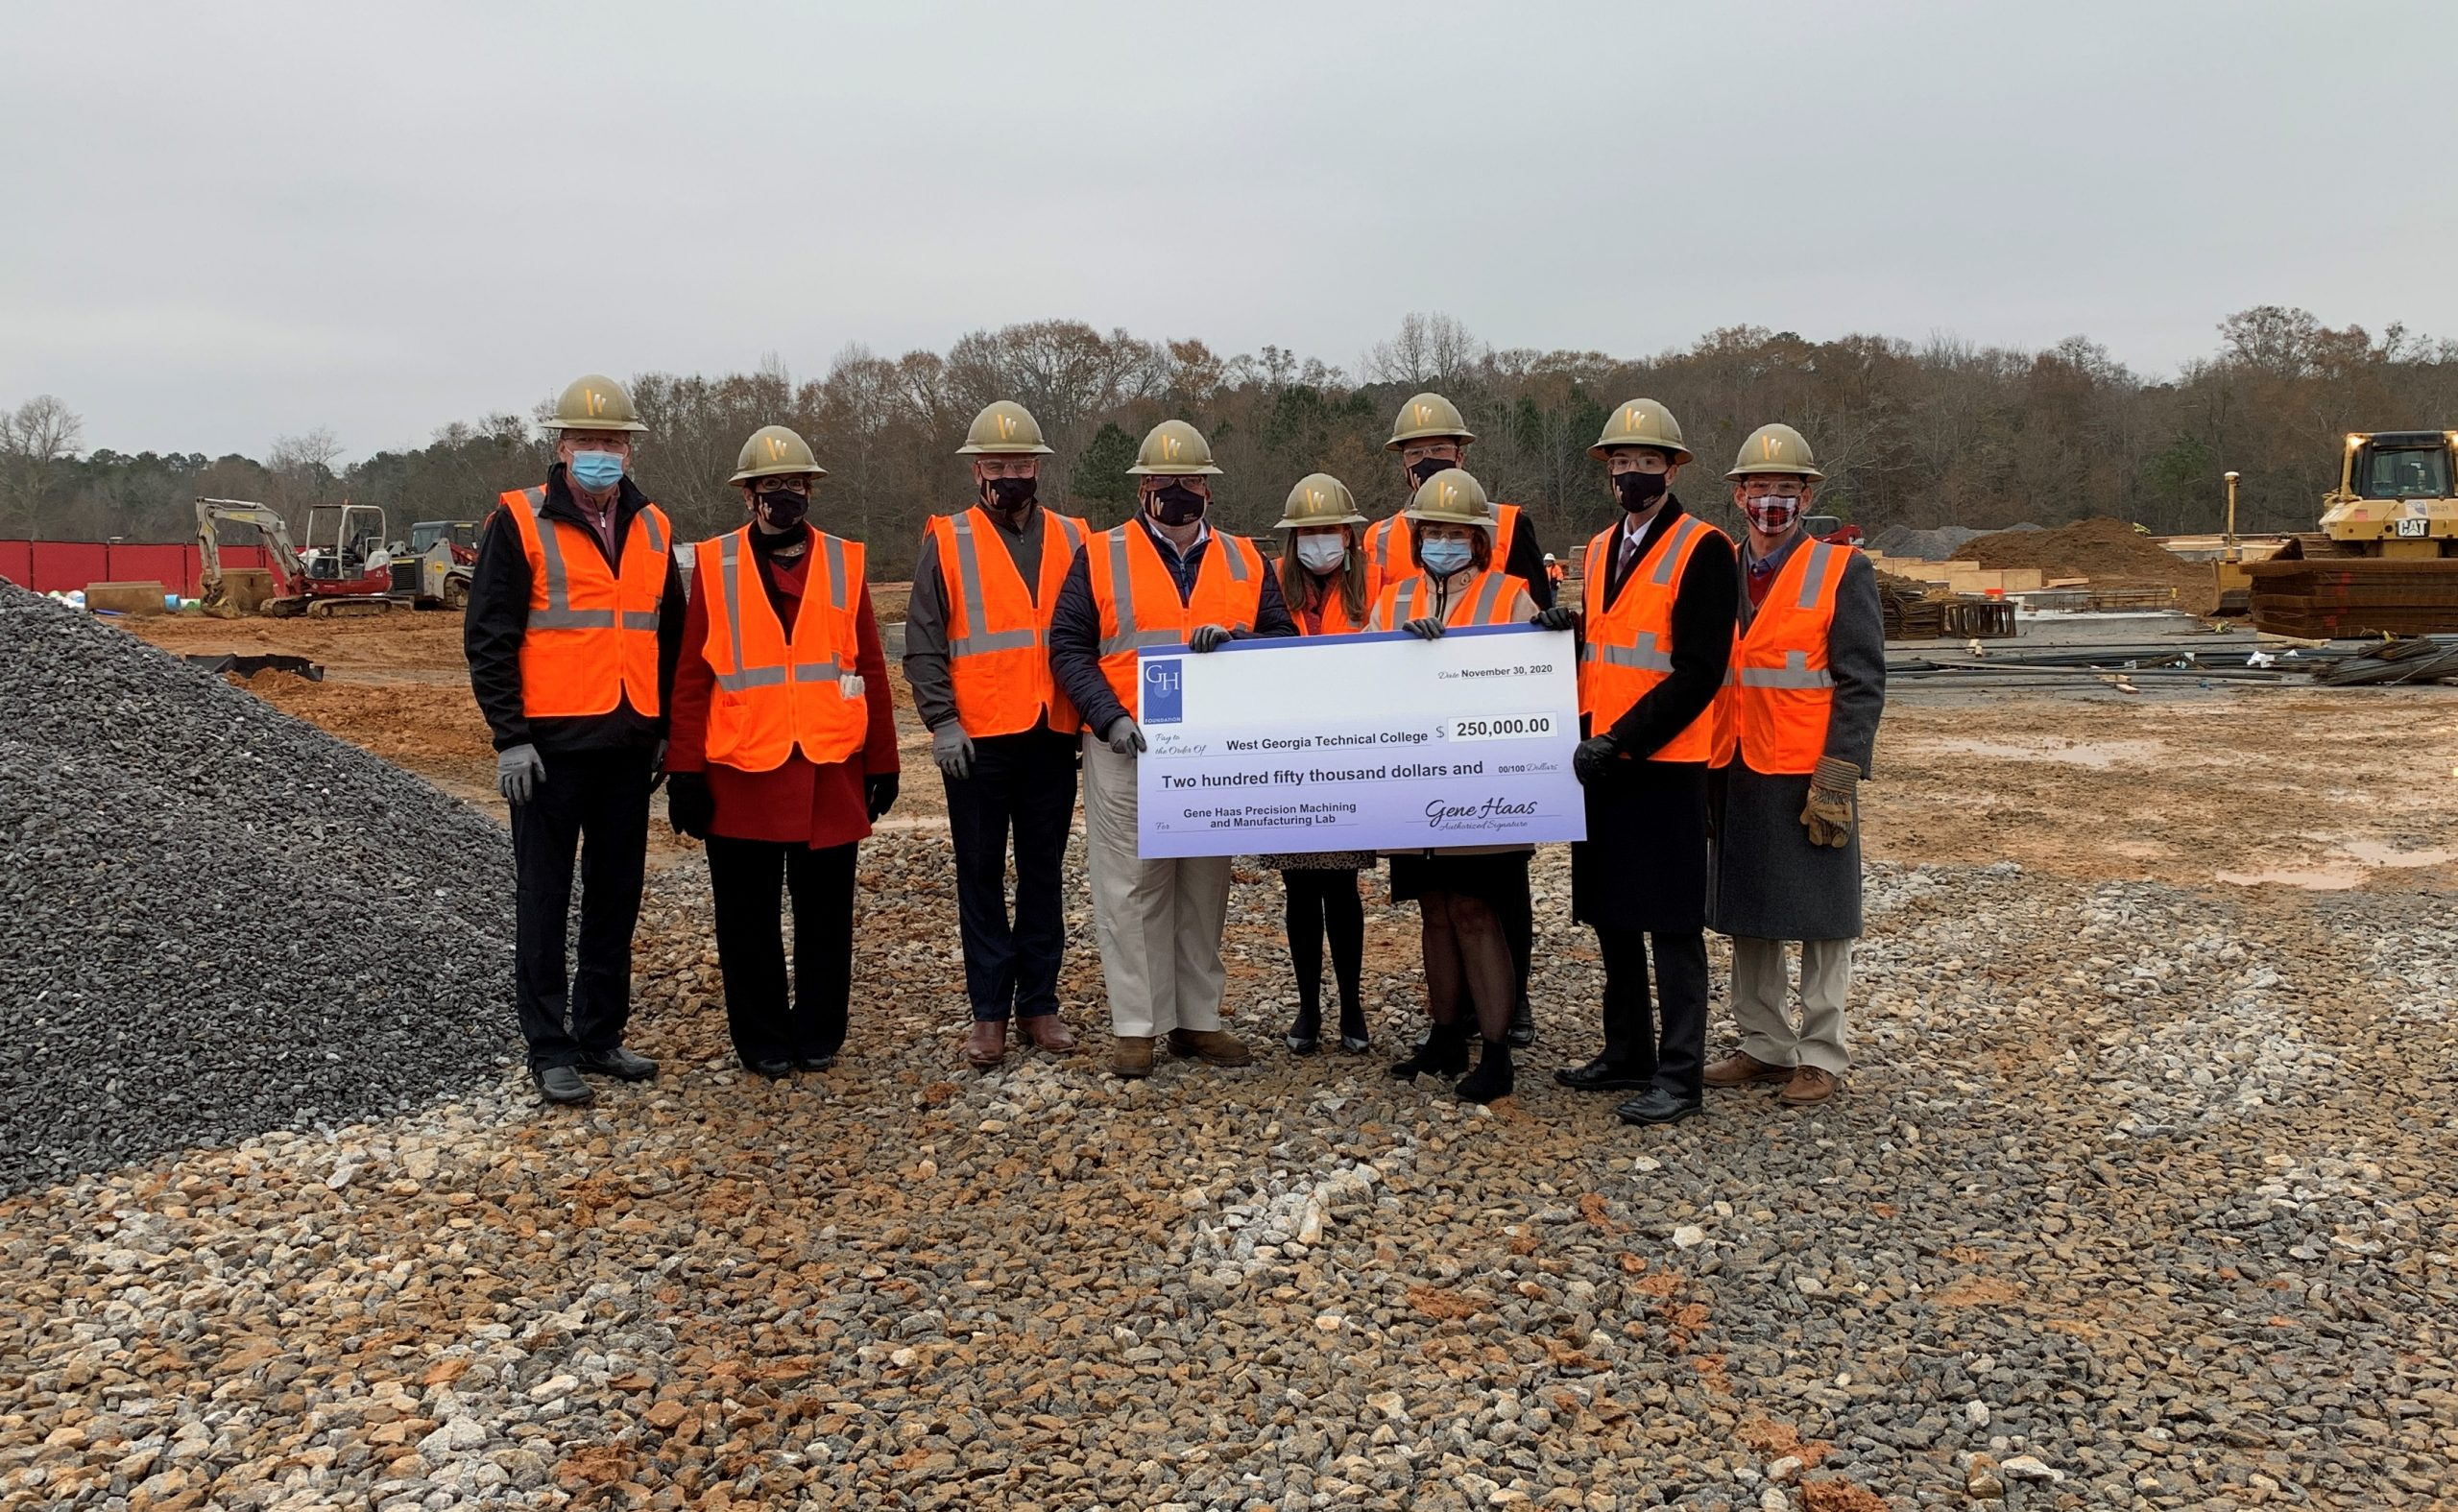 Gene Haas Foundation check presentation at construction site